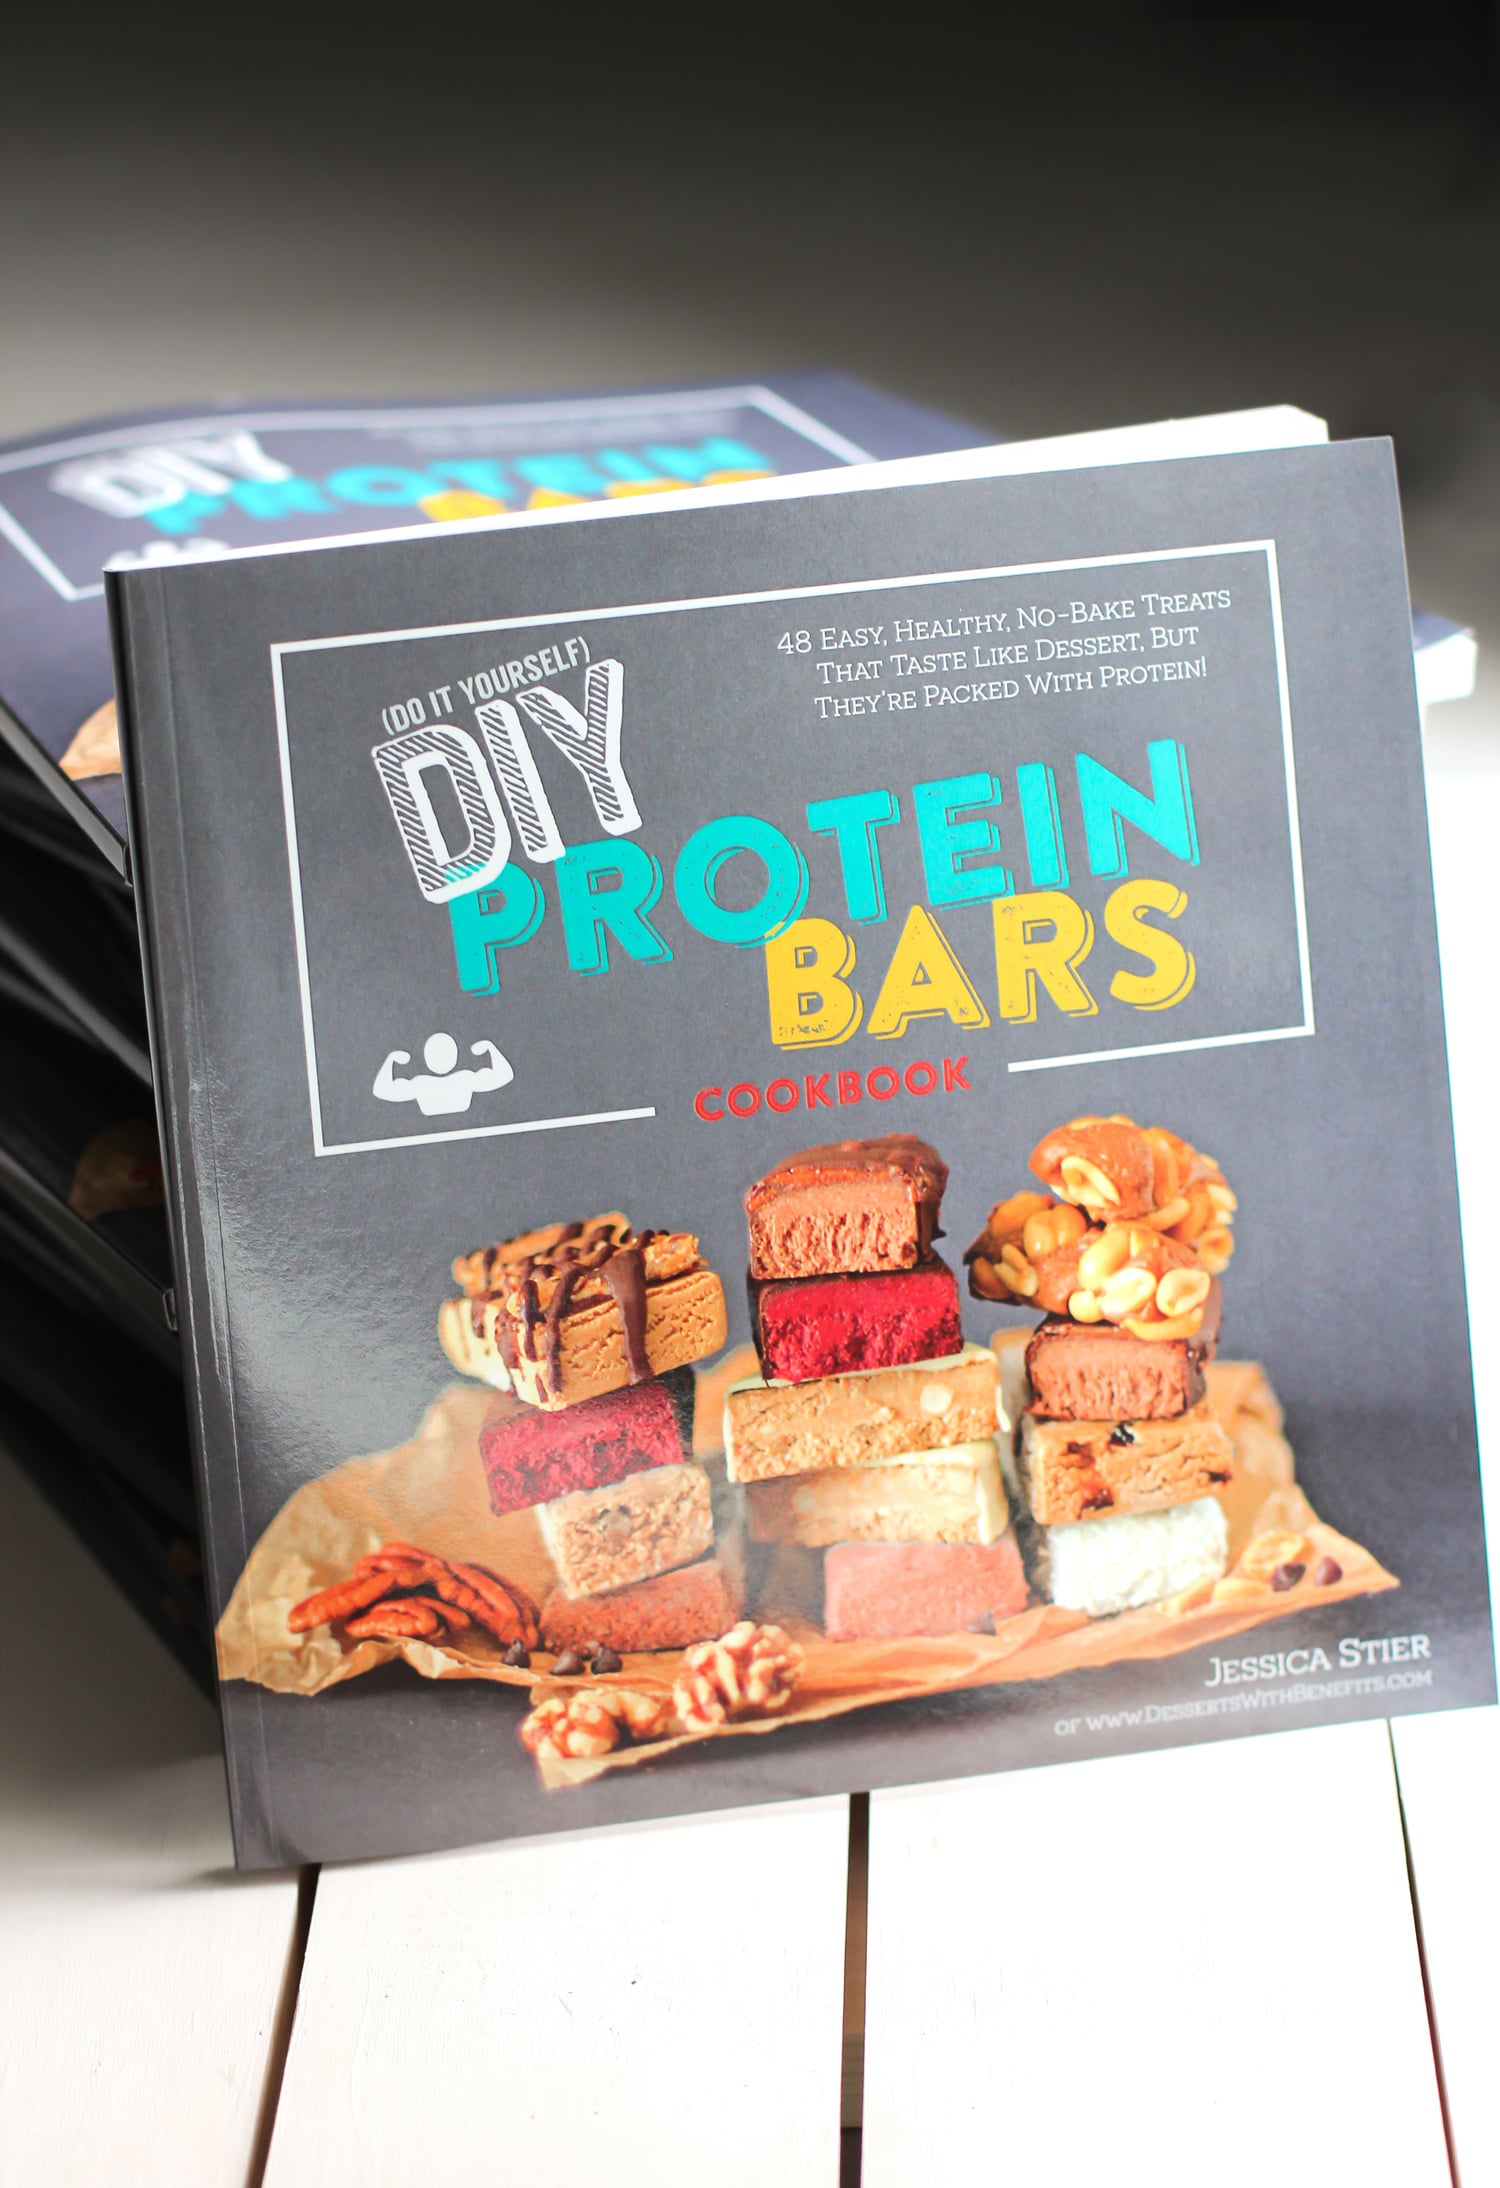 The DIY Protein Bars Cookbook is a collection of 48 easy, healthy no-bake protein bar recipes! Homemade protein bars are healthier than storebought, and they're also cheaper. You'll fall in love with each and every protein bar recipe!